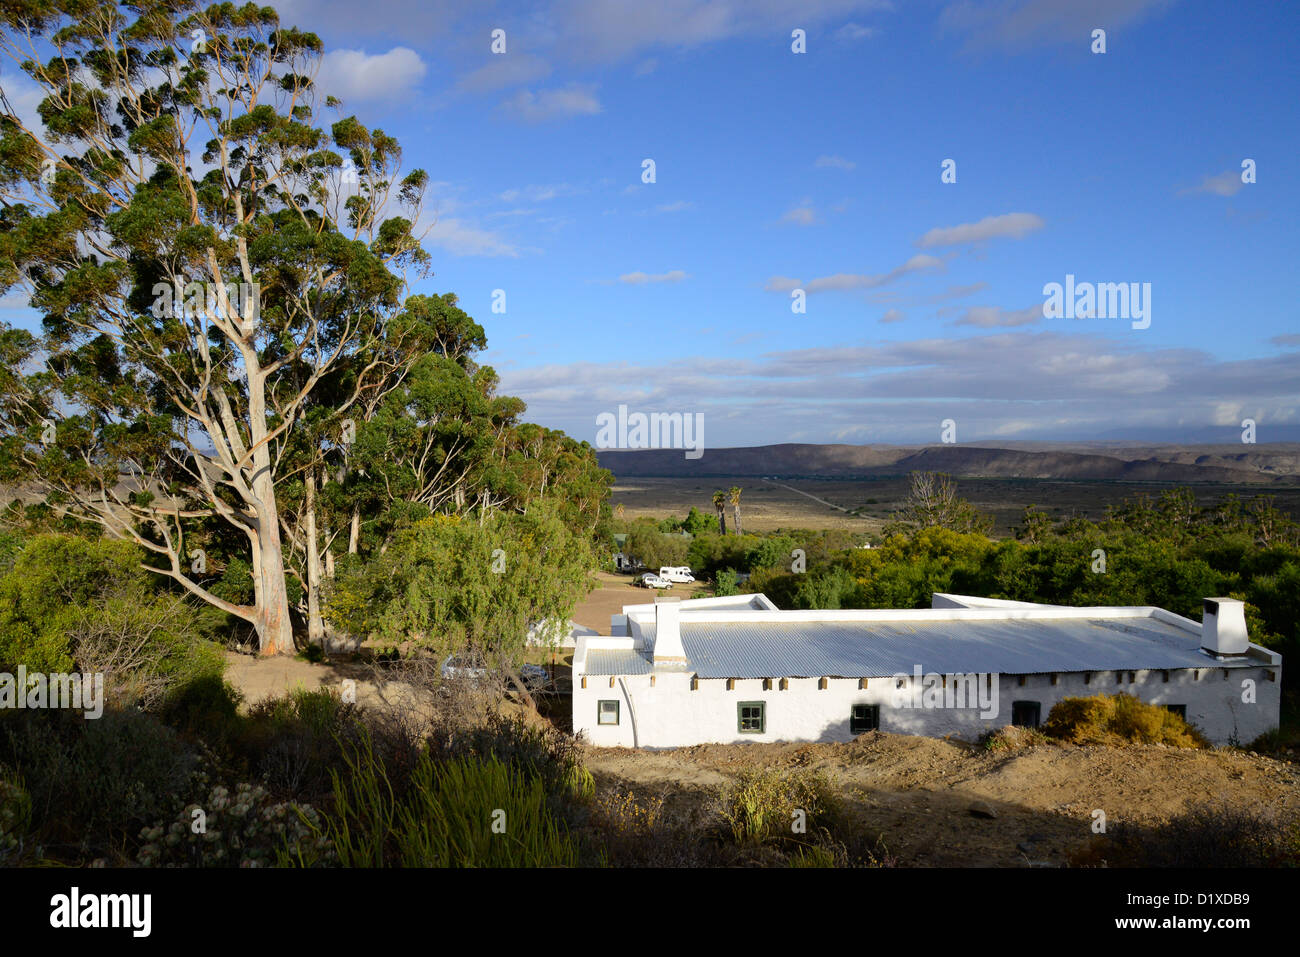 Warmwaterberg historical sanatorium, currently used as a hot spa for tourists near Barrydale, Karoo, South Africa - Stock Image